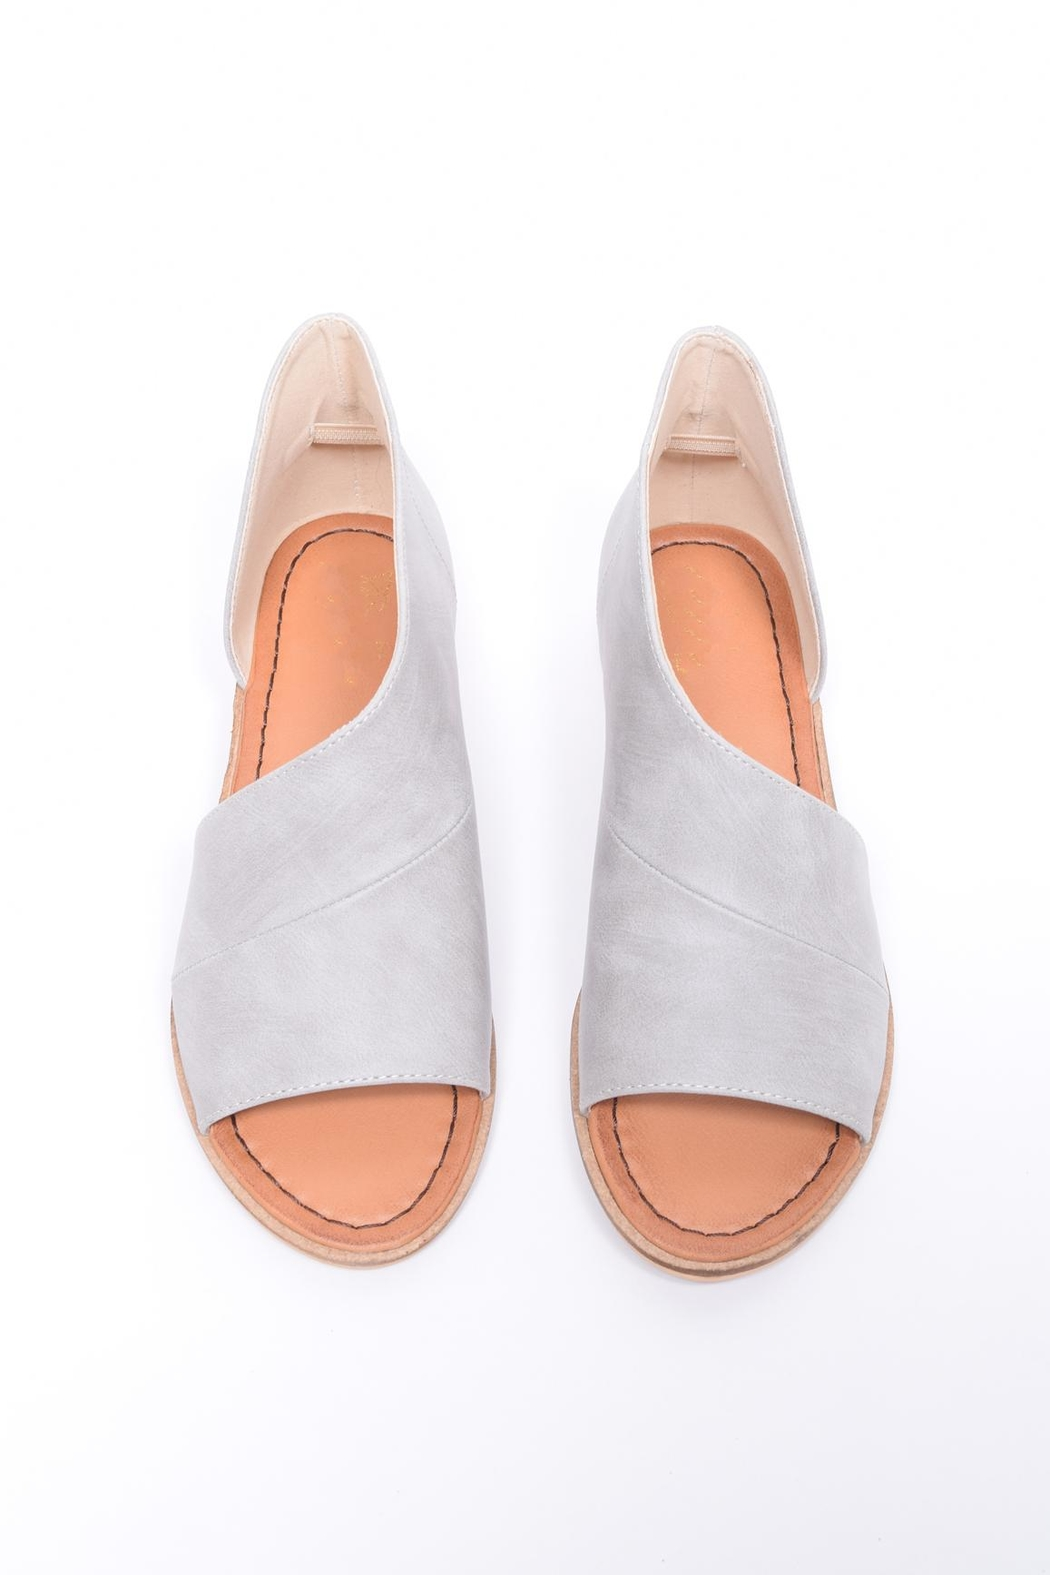 Unbranded Cutout Peep-Toe Flat - Front Cropped Image